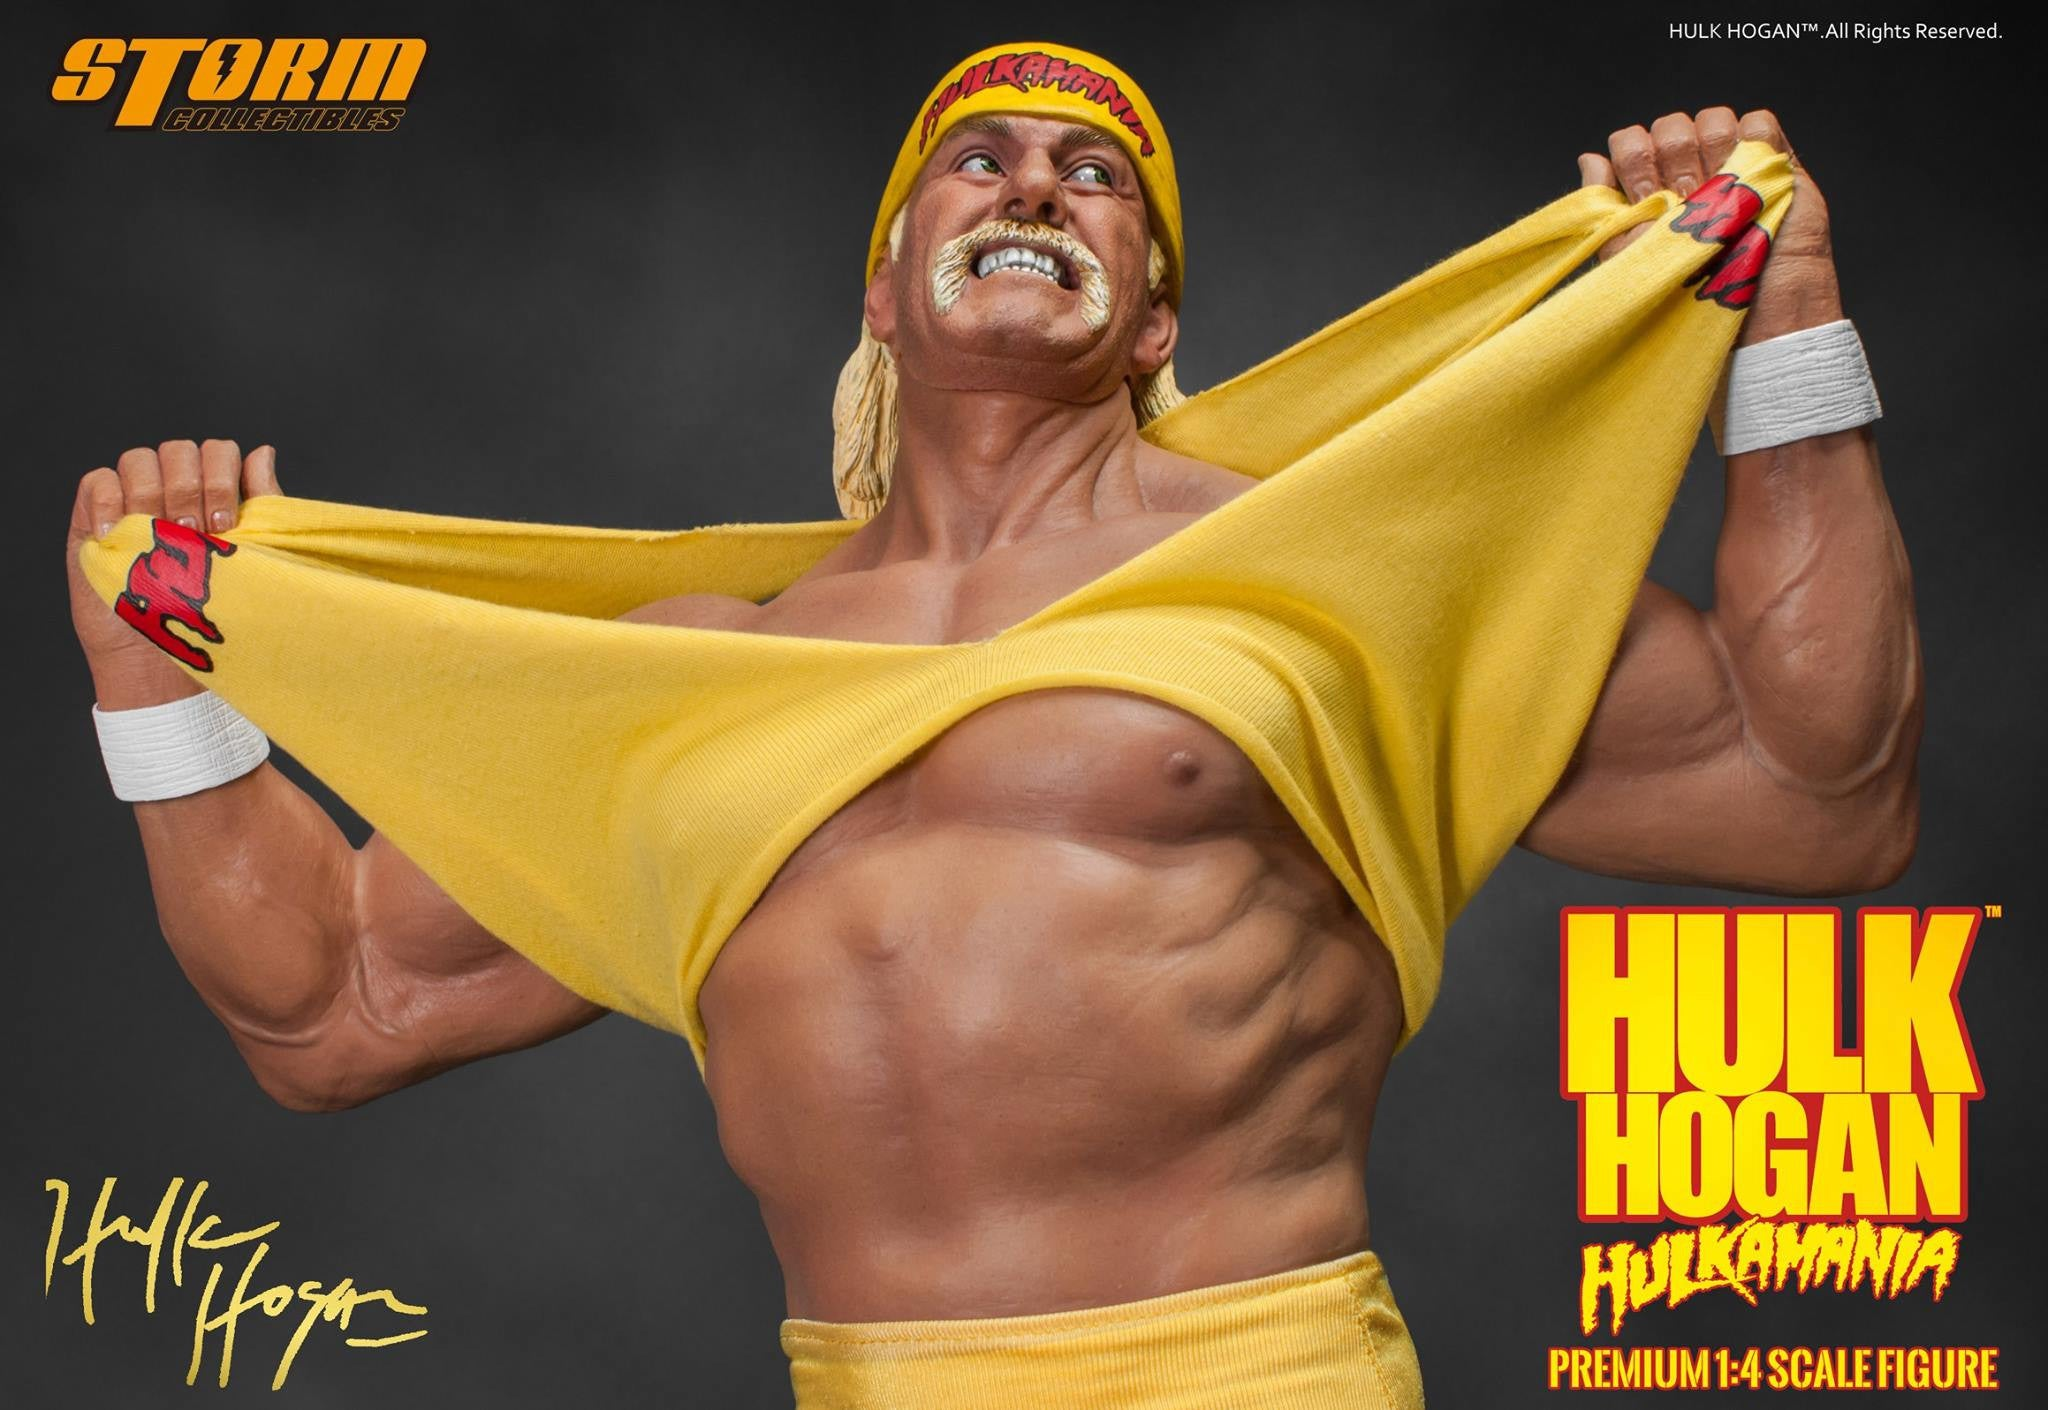 Storm Collectibles - 1/4th Scale Premium Figure - Hulk Hogan Hulkamania - Marvelous Toys - 7